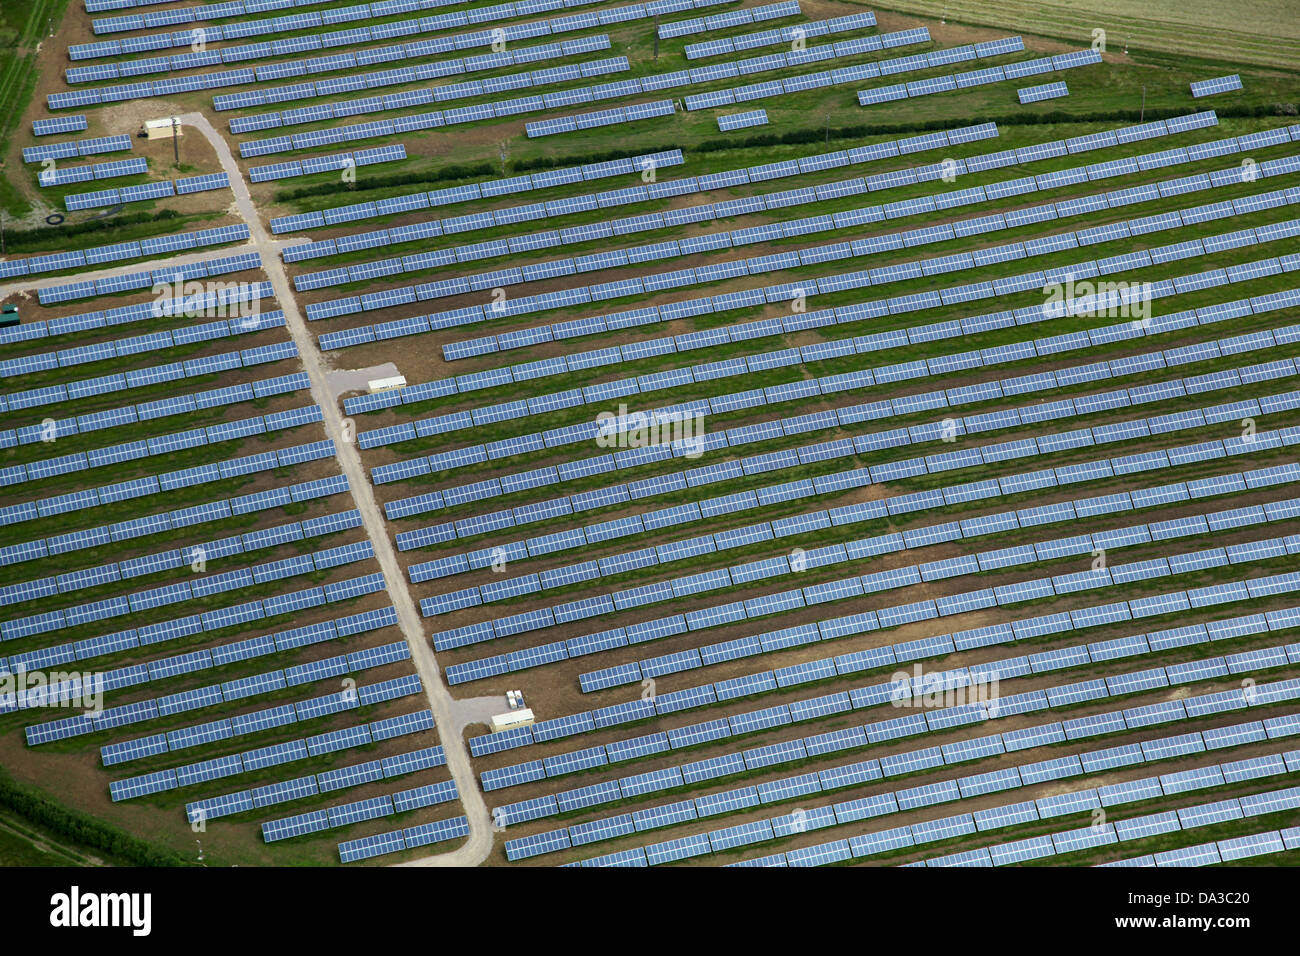 aerial view of a solar farm - a field of solar panels - Stock Image